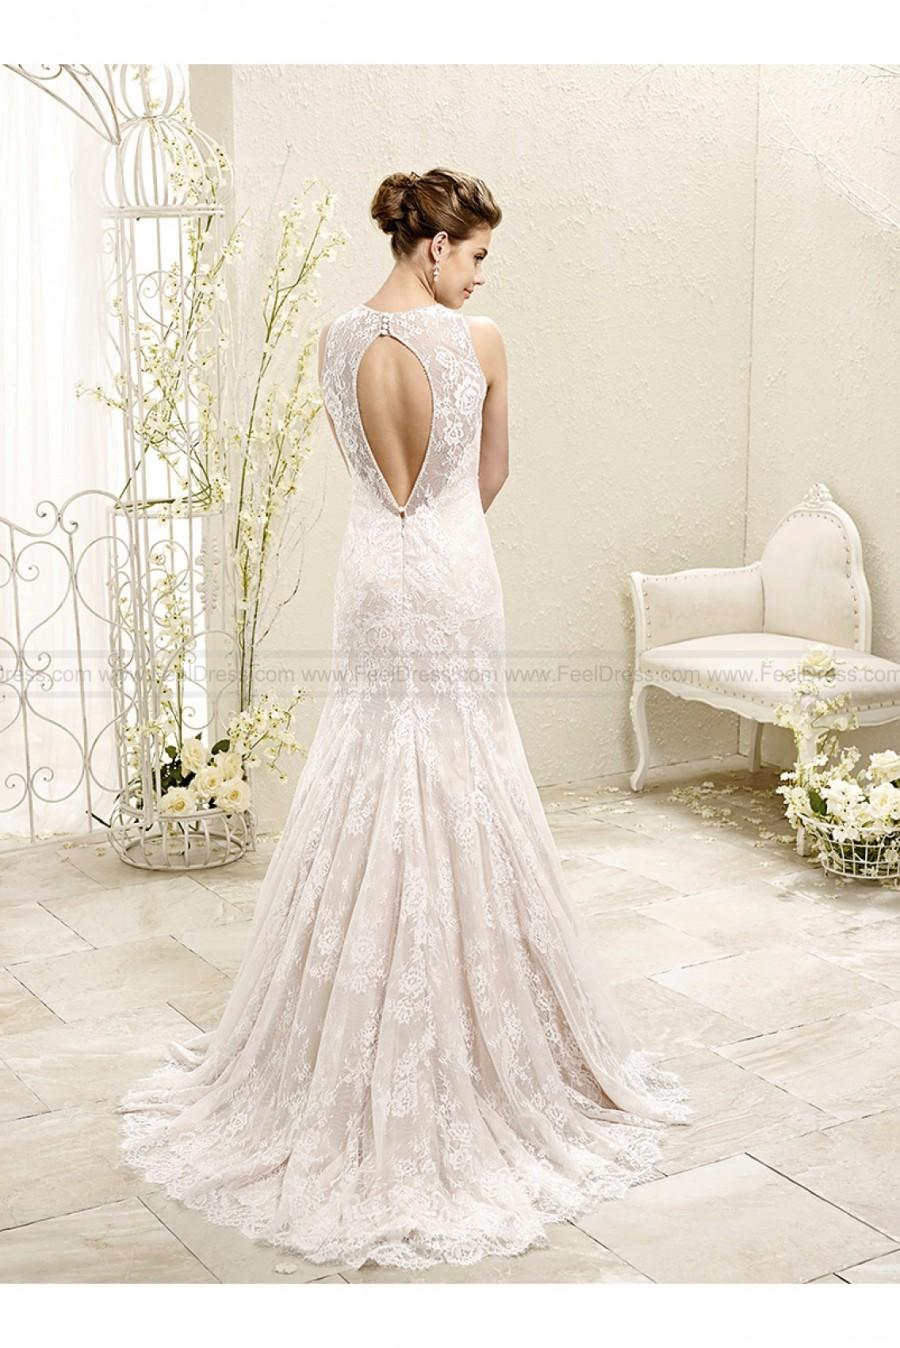 Mariage - 2015 New Fashion Eddy K Wedding Dresses Style 77969